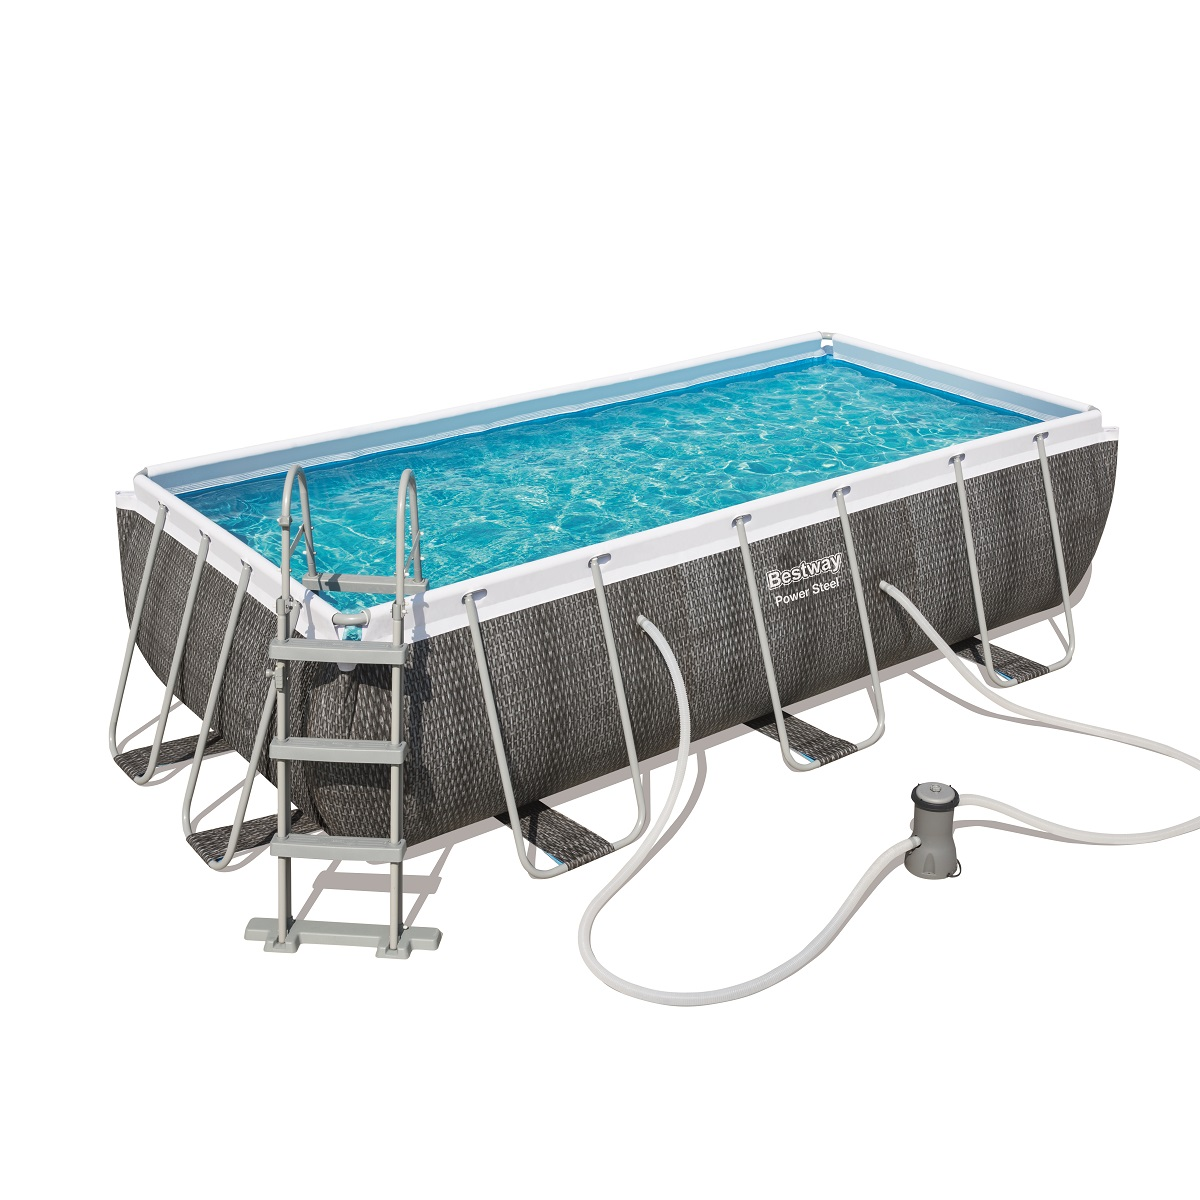 Bazén BESTWAY Power Steel Pool 404 x 201 x 100 cm set 56721